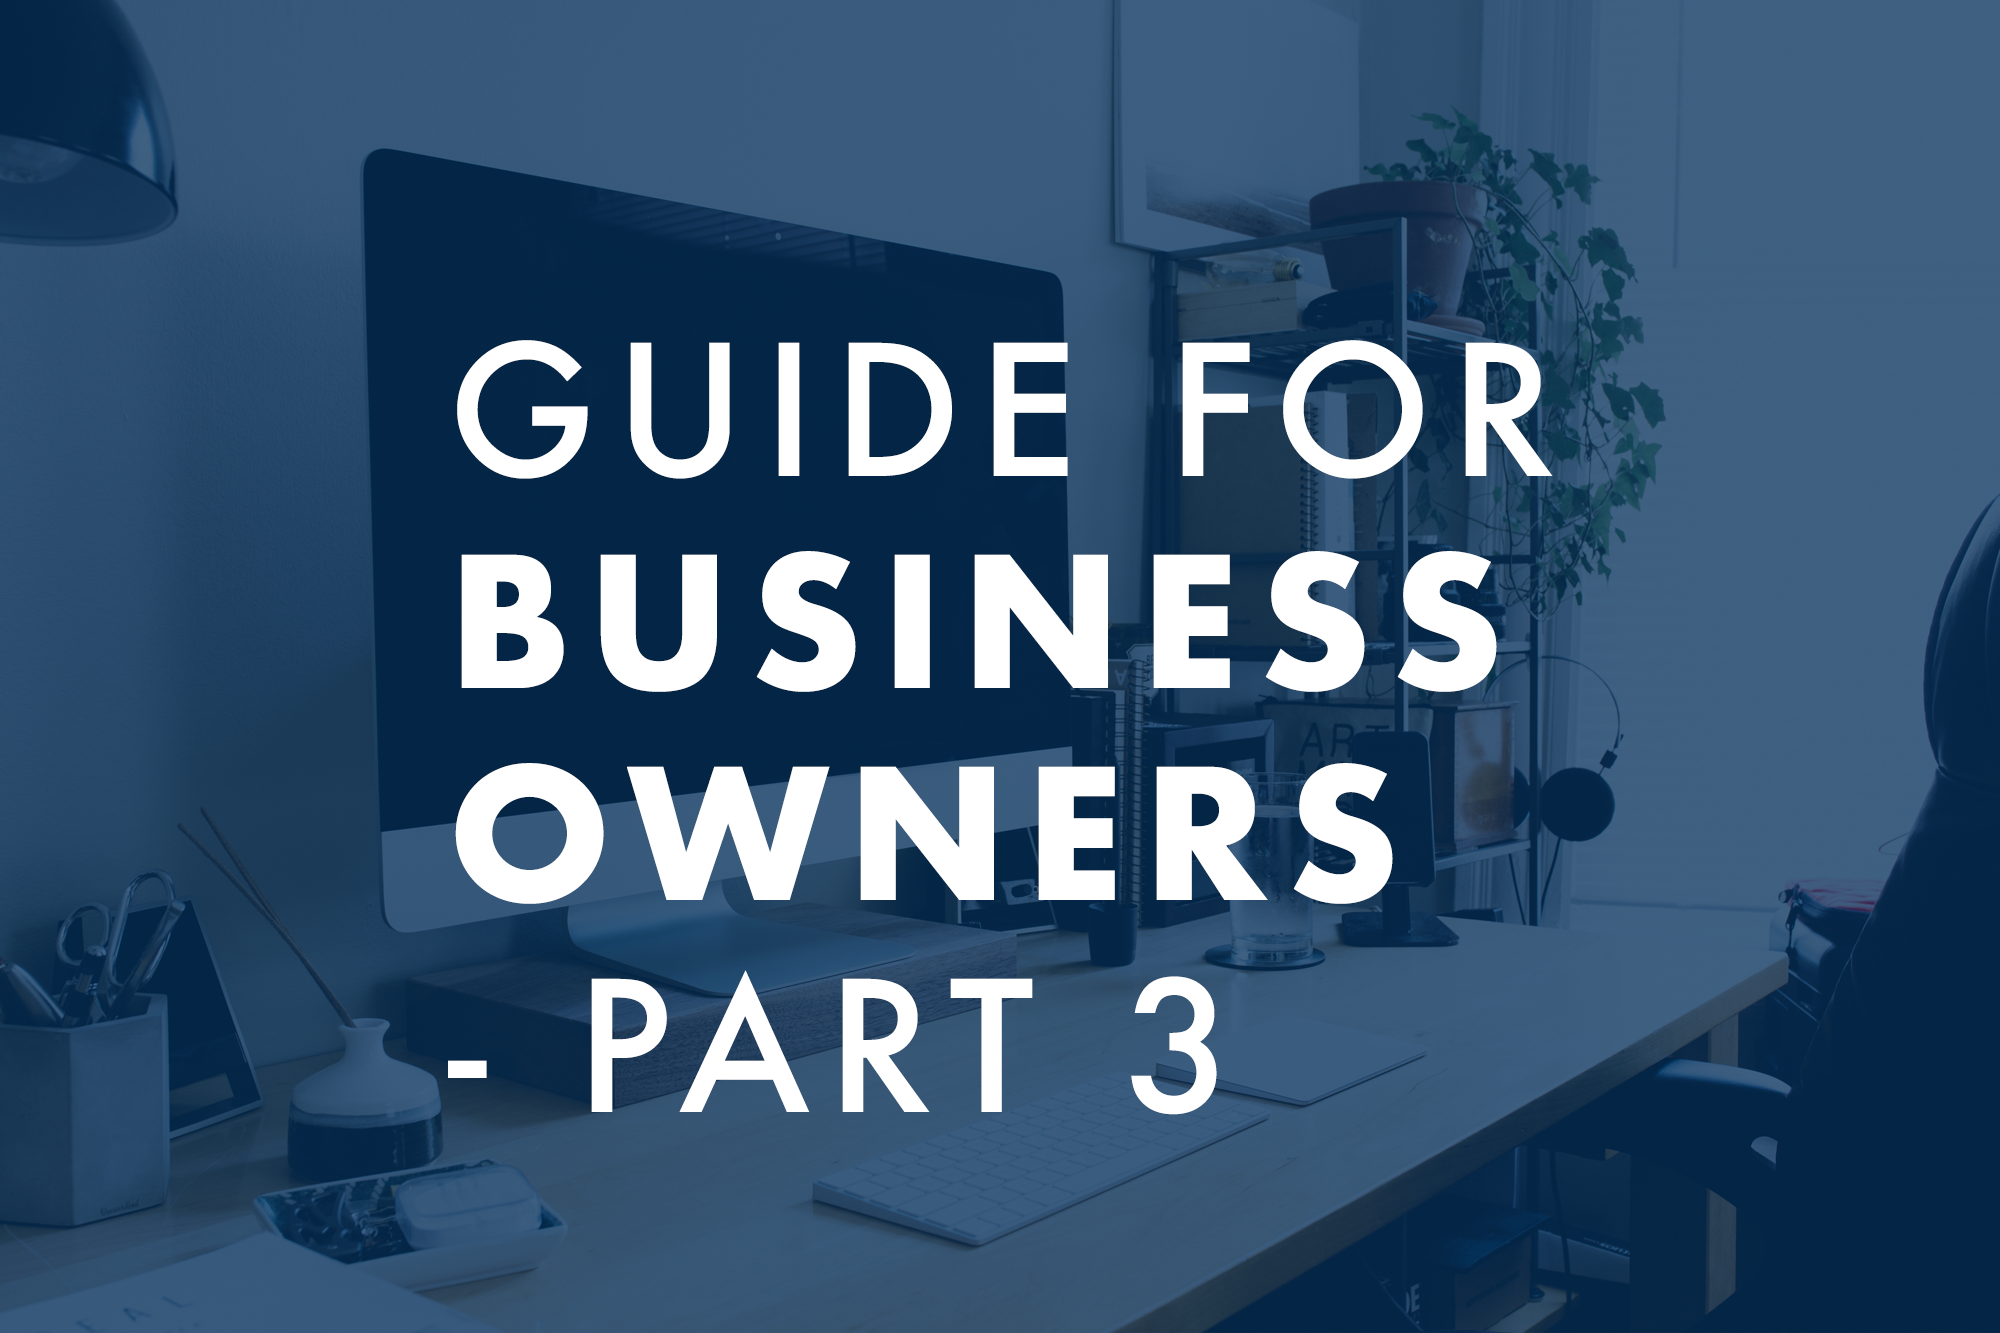 Business Owners Part 3